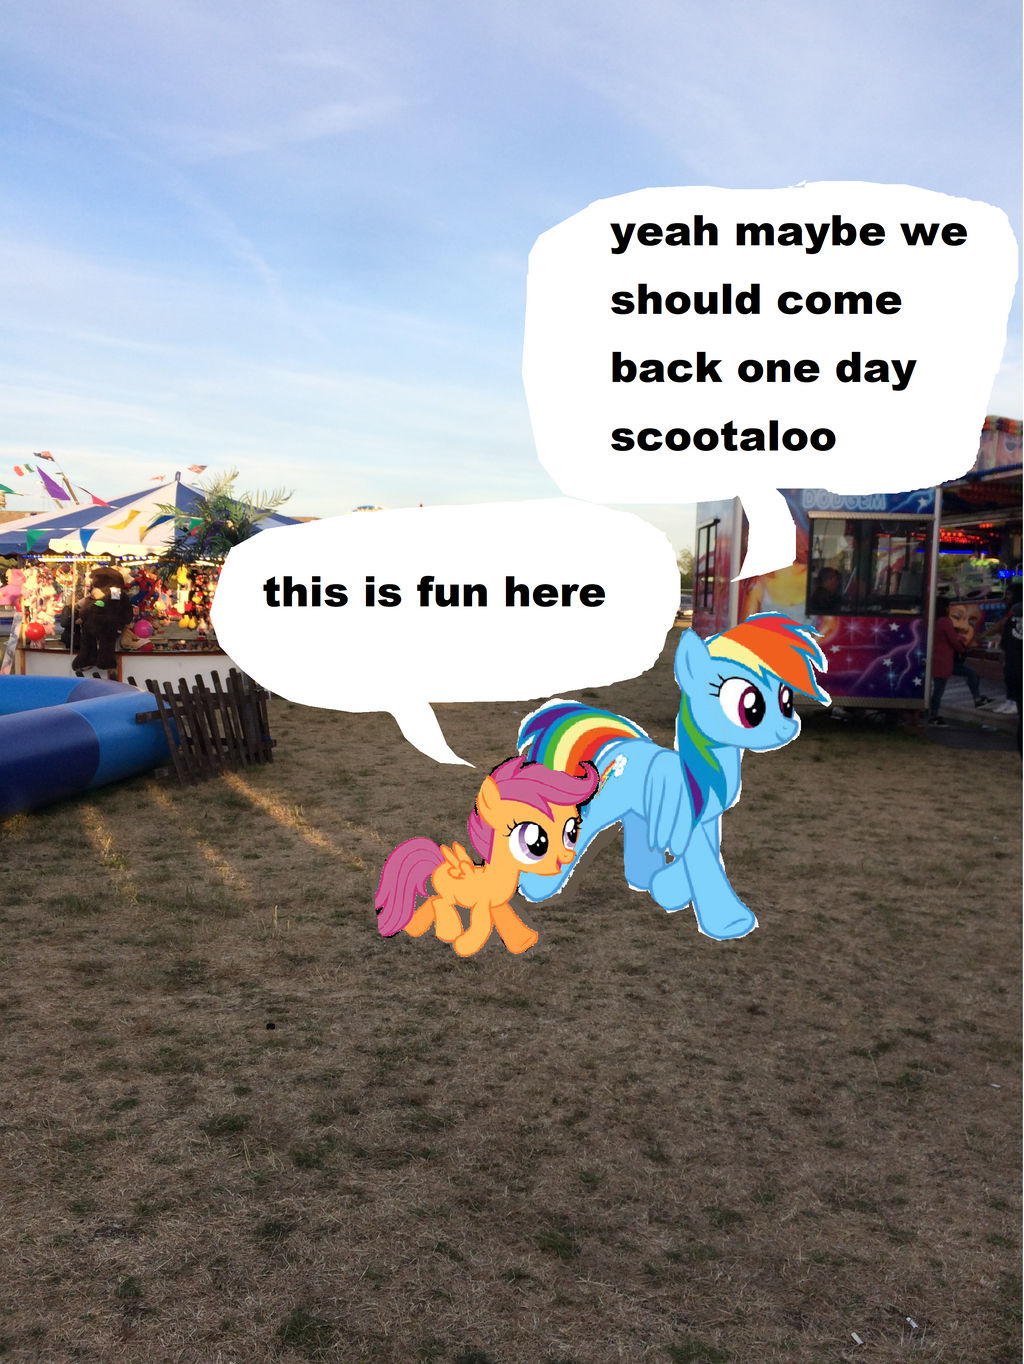 Rainbow Dash And Scootaloo Are At The Funfair By Yungdeez On Deviantart Although the visual juxtaposition of seeing hulk,optimus and godzilla interacting with the ponies would be compelling. deviantart